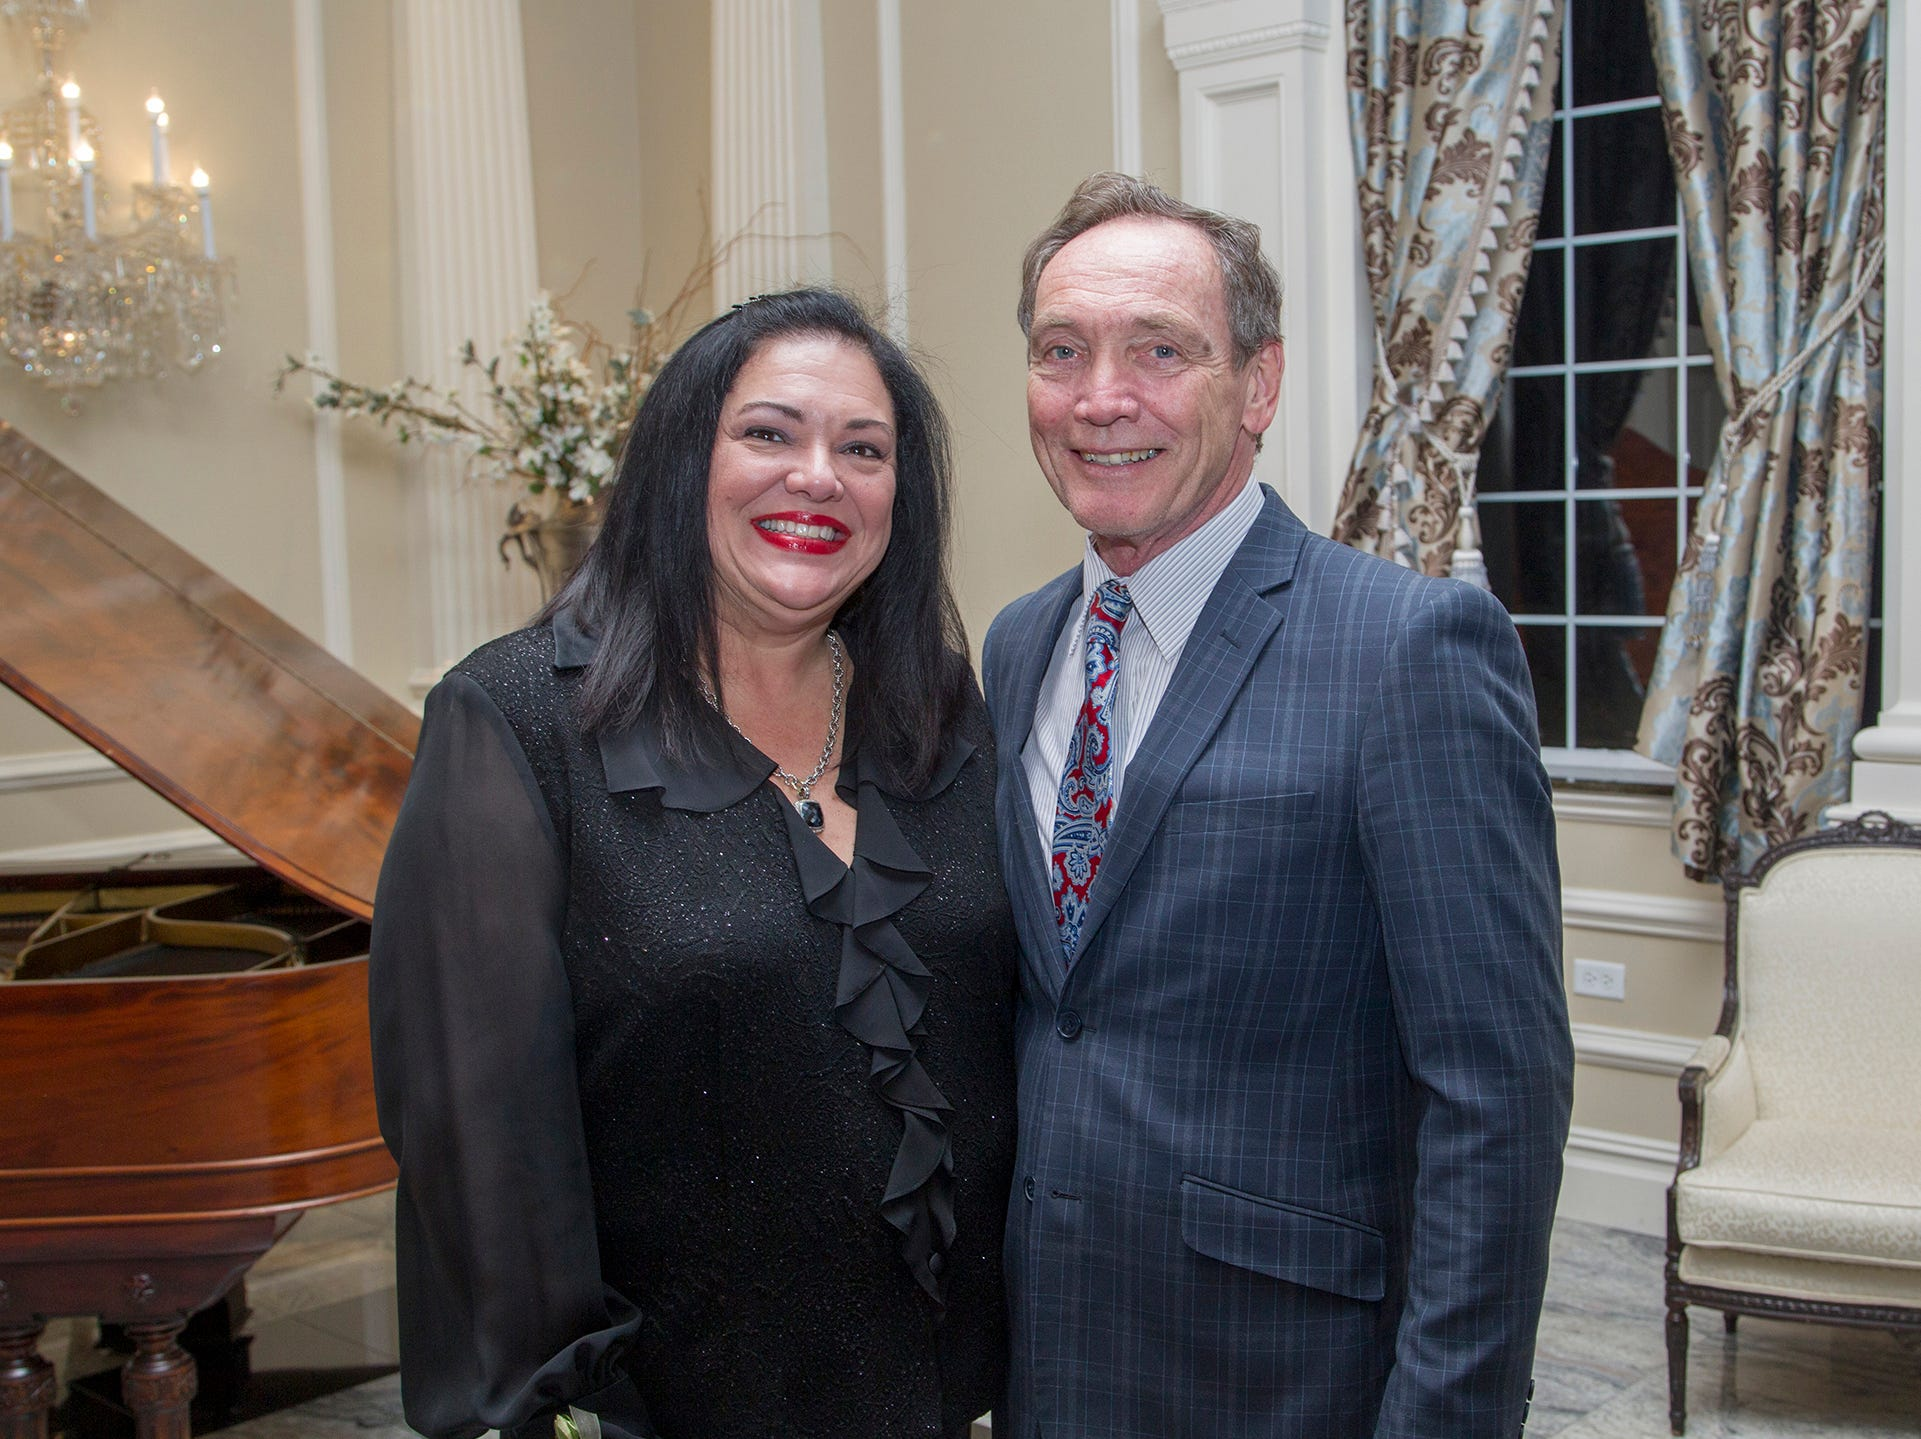 Marlene Caride and Tim Eustace. Ramapo College held its 37th Annual Distinguished Citizens Dinner at Rockleigh Country Club. 03/02/2019